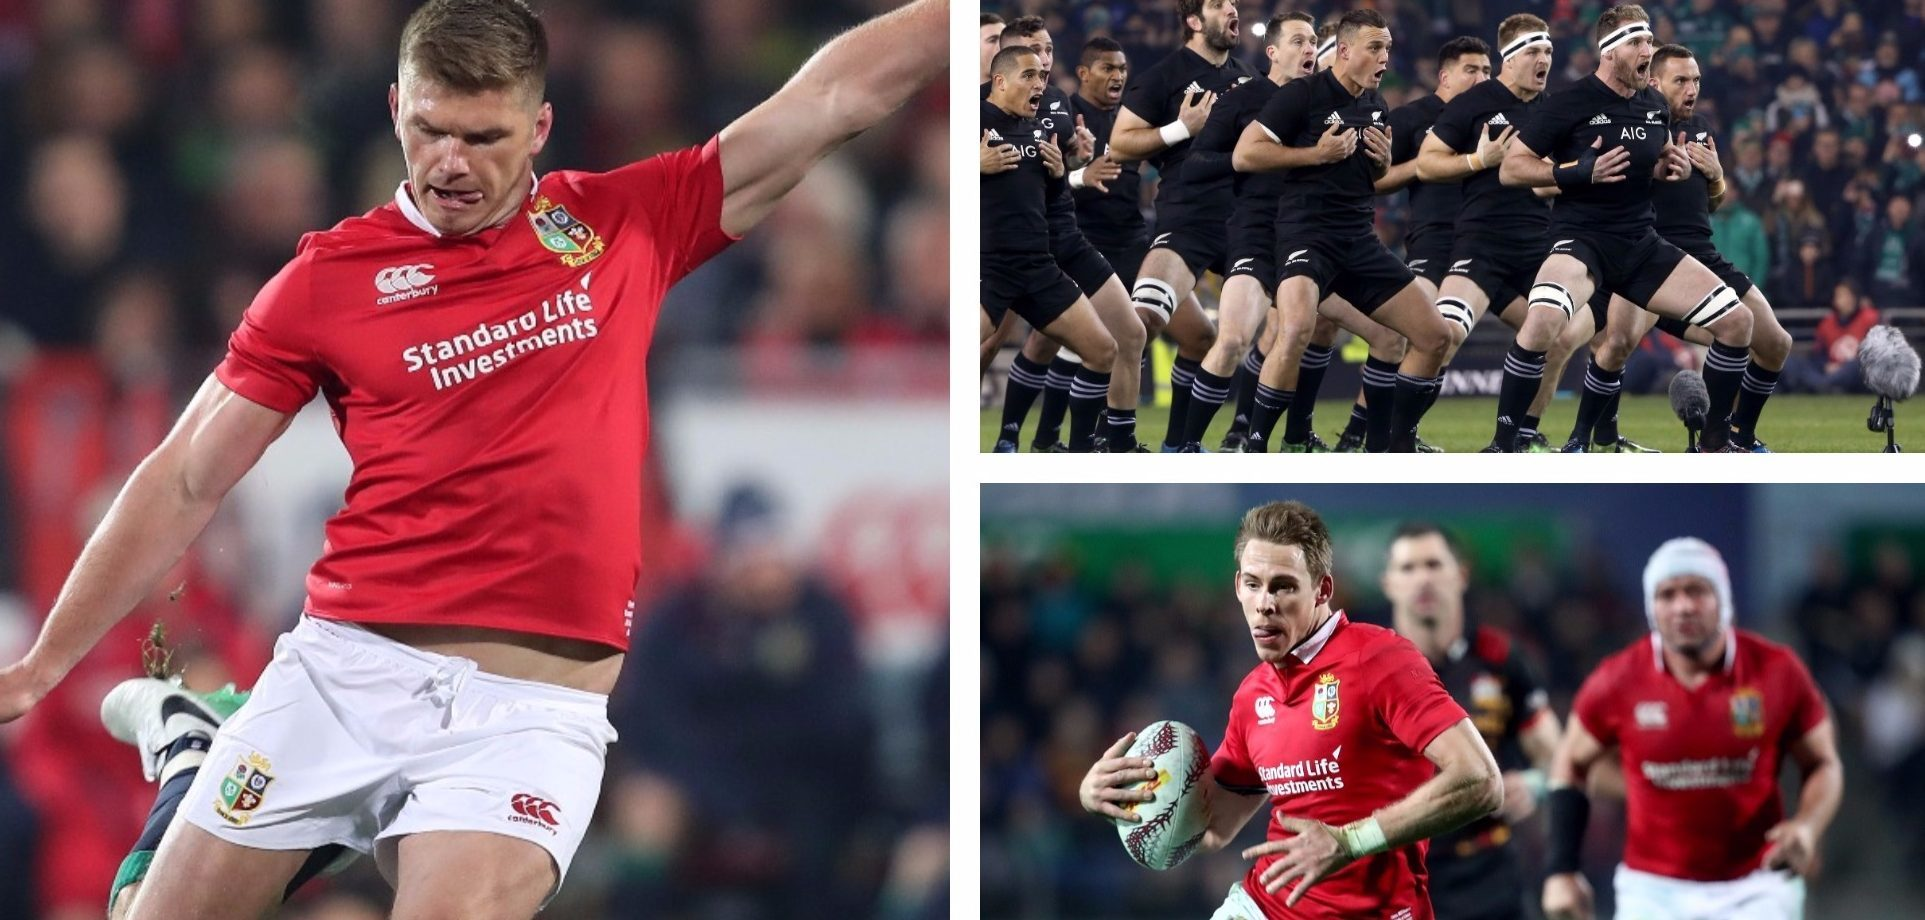 The Lions will face off against the All Blacks tomorrow.